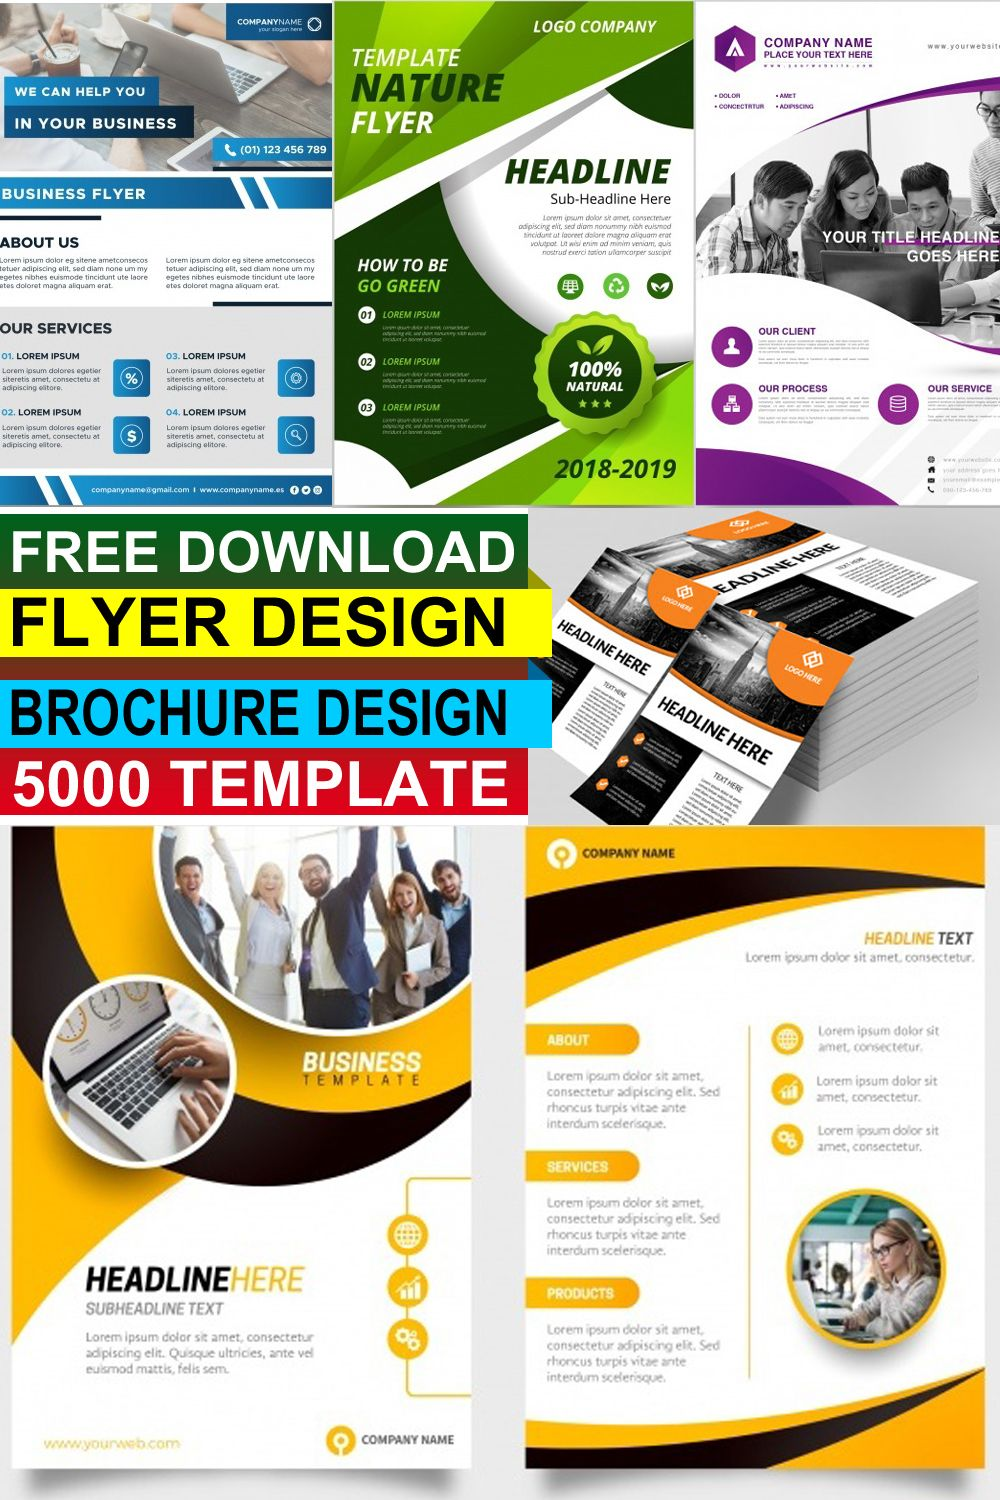 Free Flyer Design Templates In 2020 Flyer Design Templates Free Flyer Templates Flyer Design